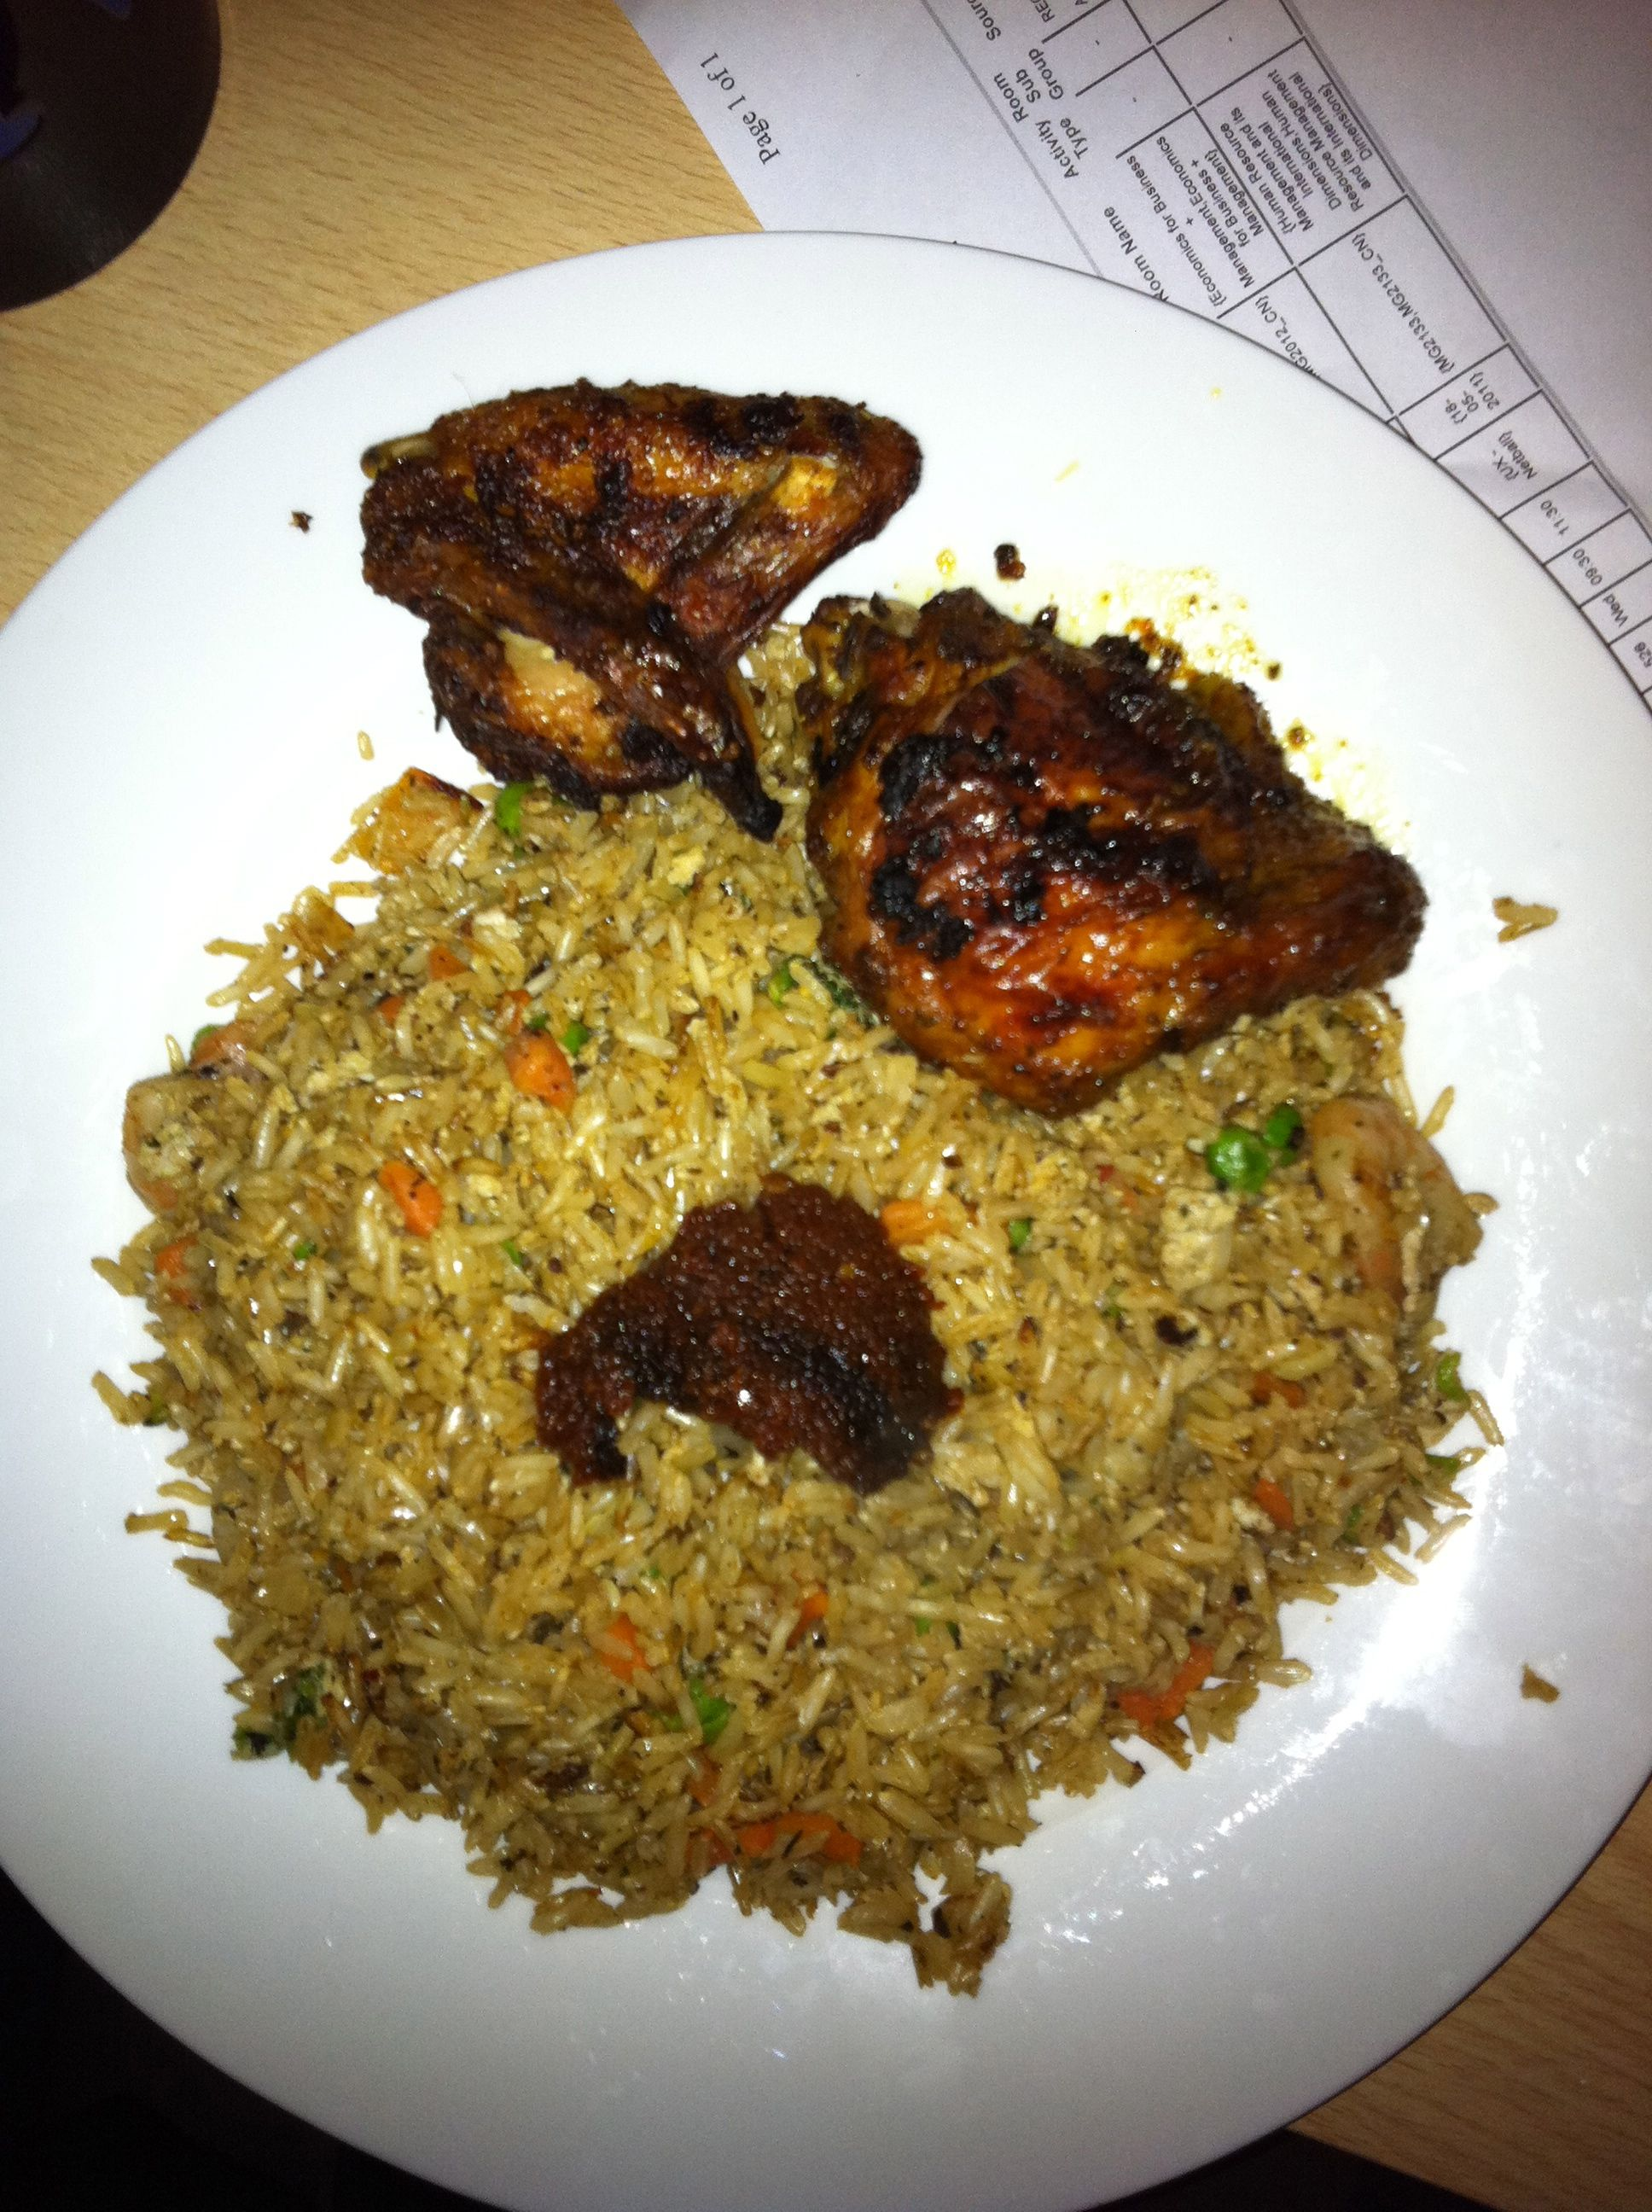 Grilled chicken with egg fried rice shito ghana style by abdul grilled chicken with egg fried rice shito ghana style by abdul basit mohammed ccuart Gallery